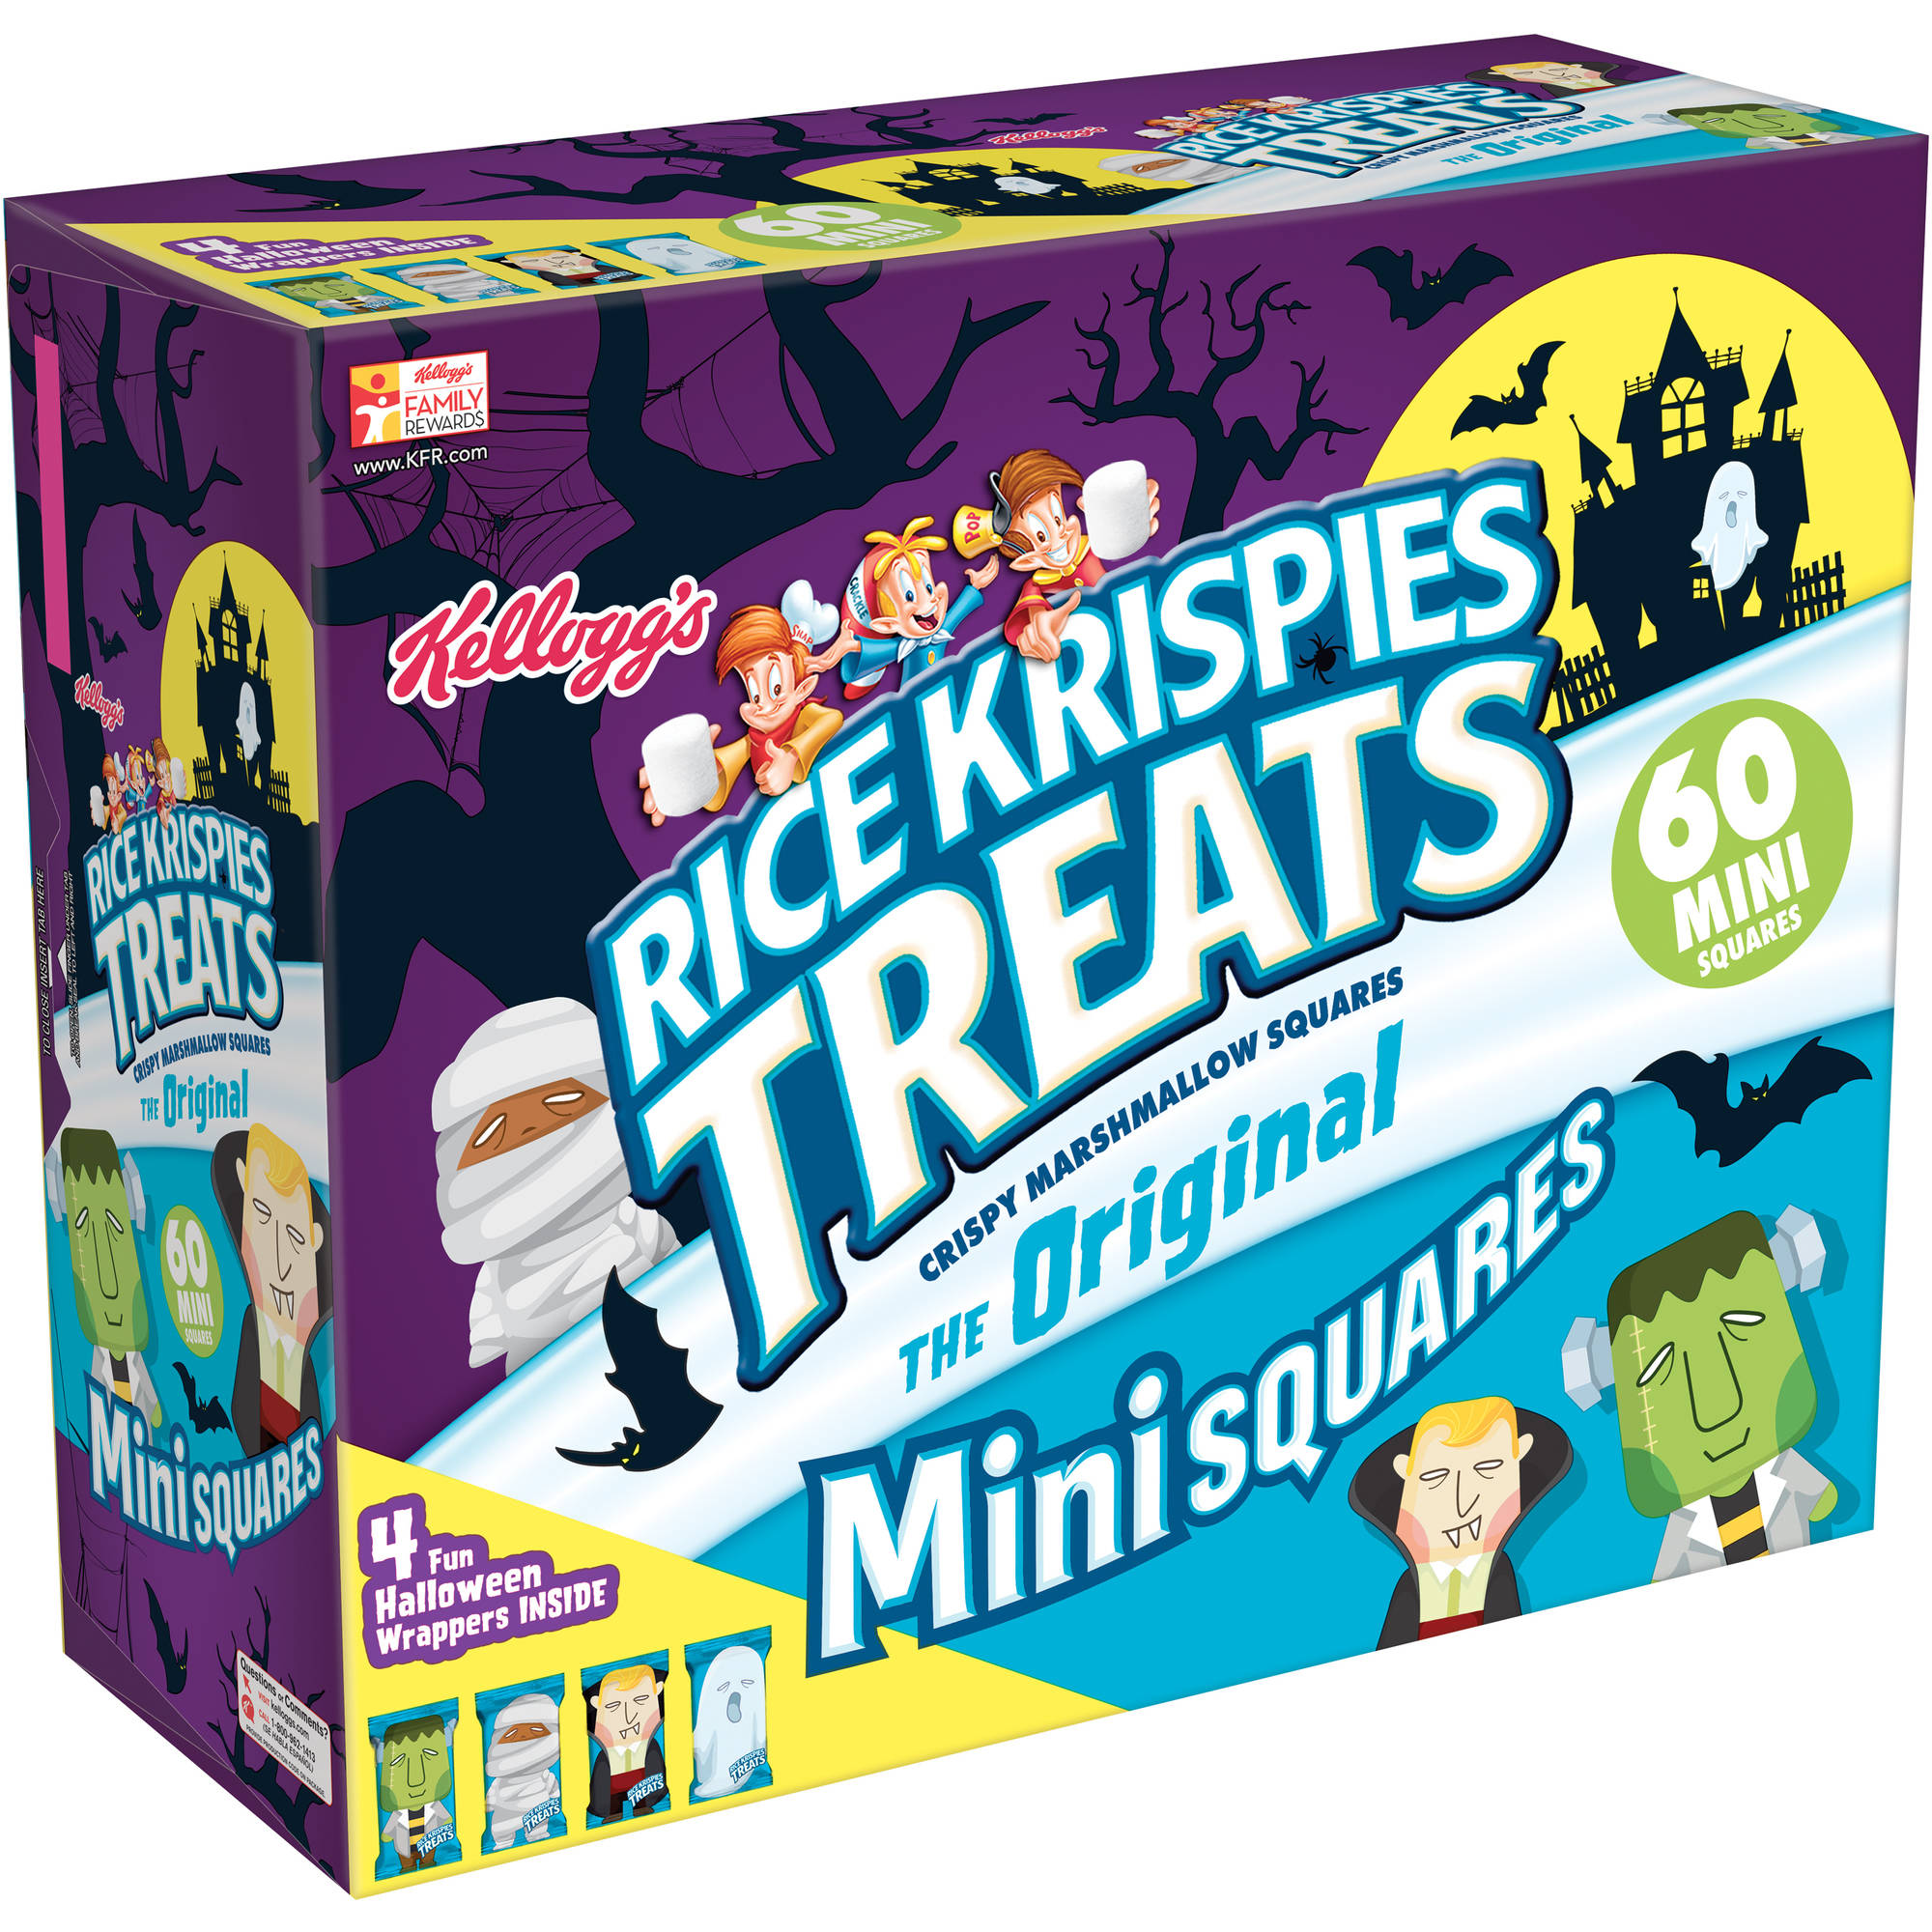 Kellogg's Halloween Rice Krispies Treats The Original Mini Crispy Marshmallow Squares, 60 count, 23.2 oz